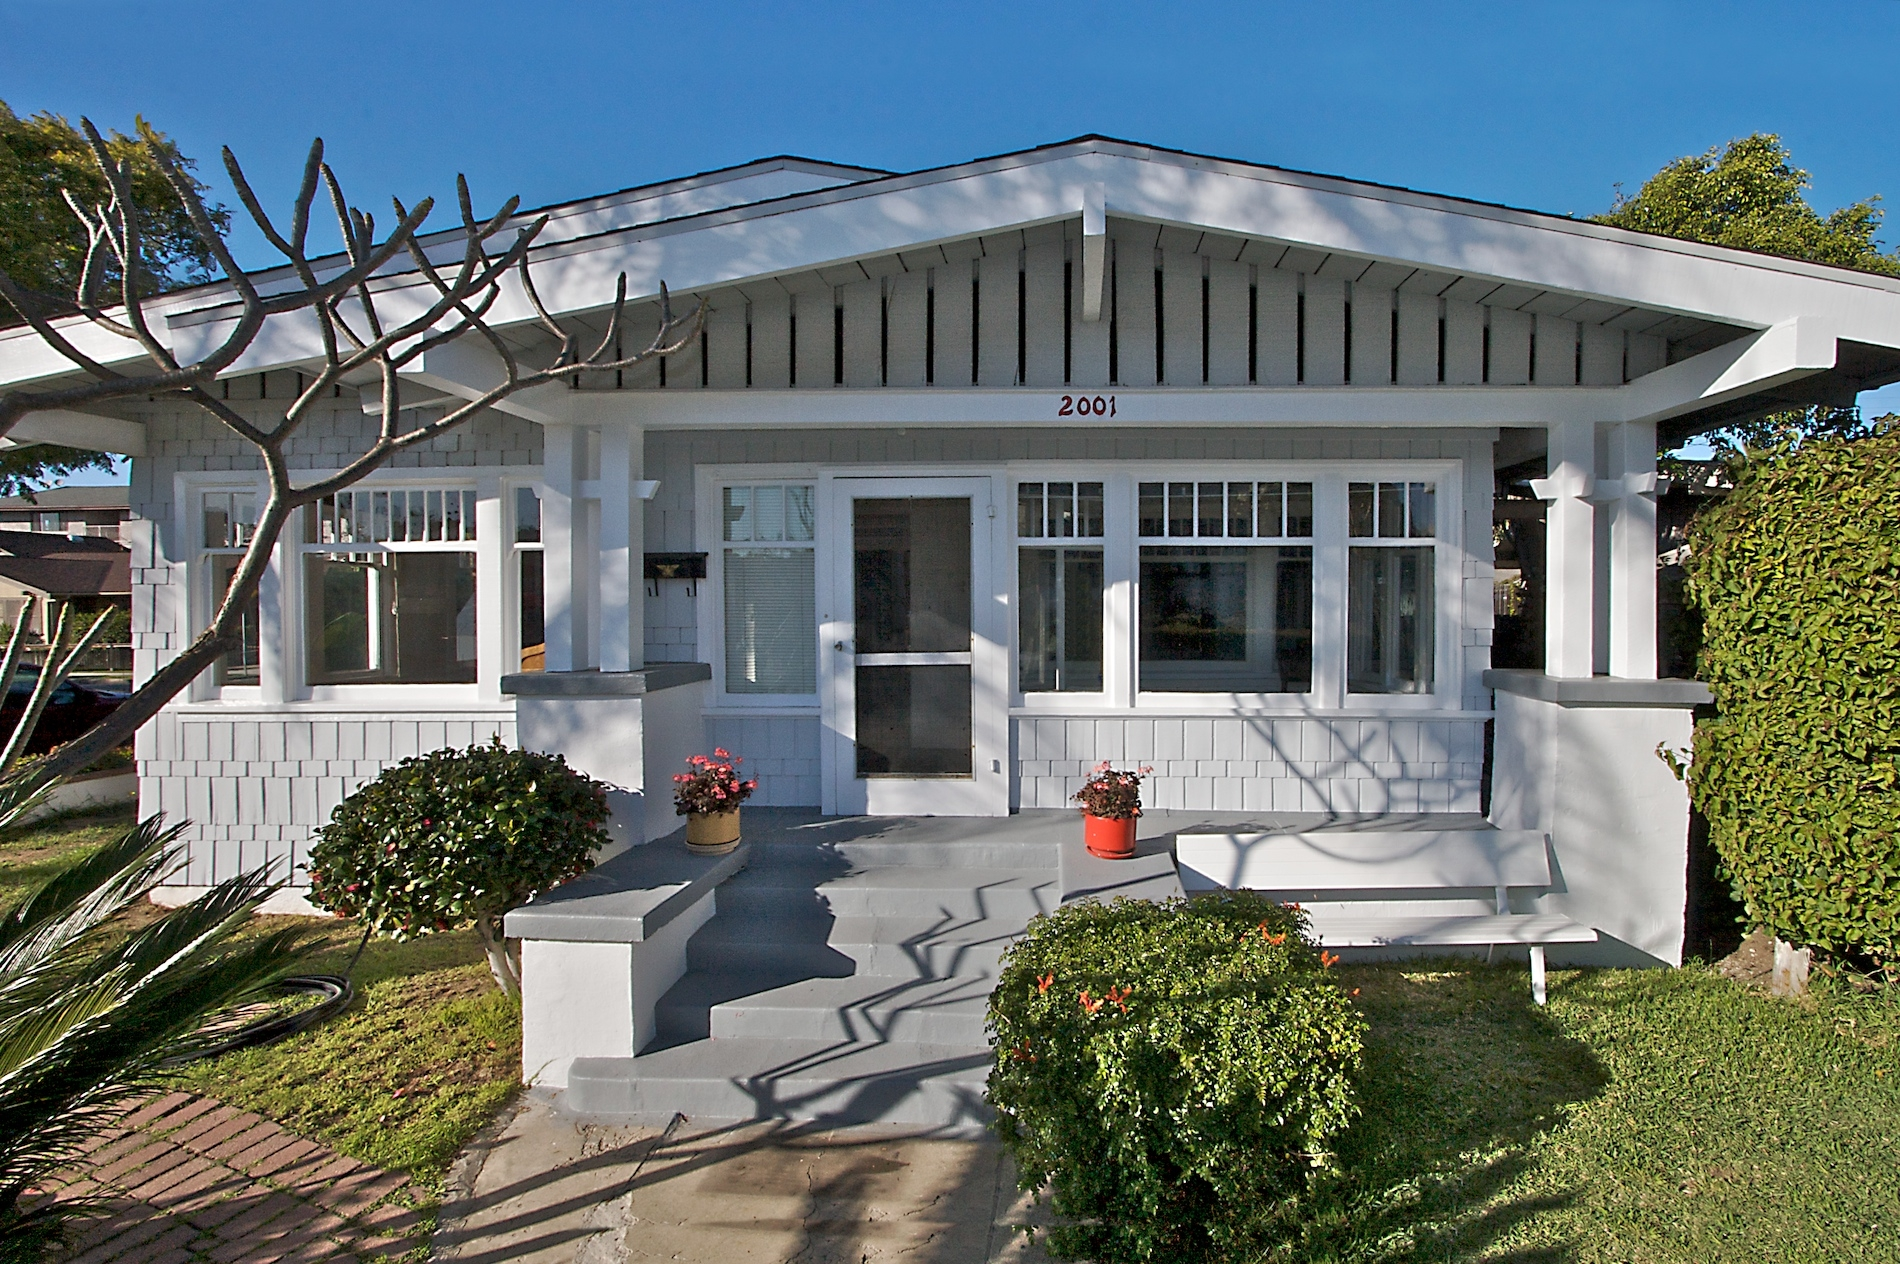 California bungalow style entry california bungalow style for Craftsman bungalow architecture